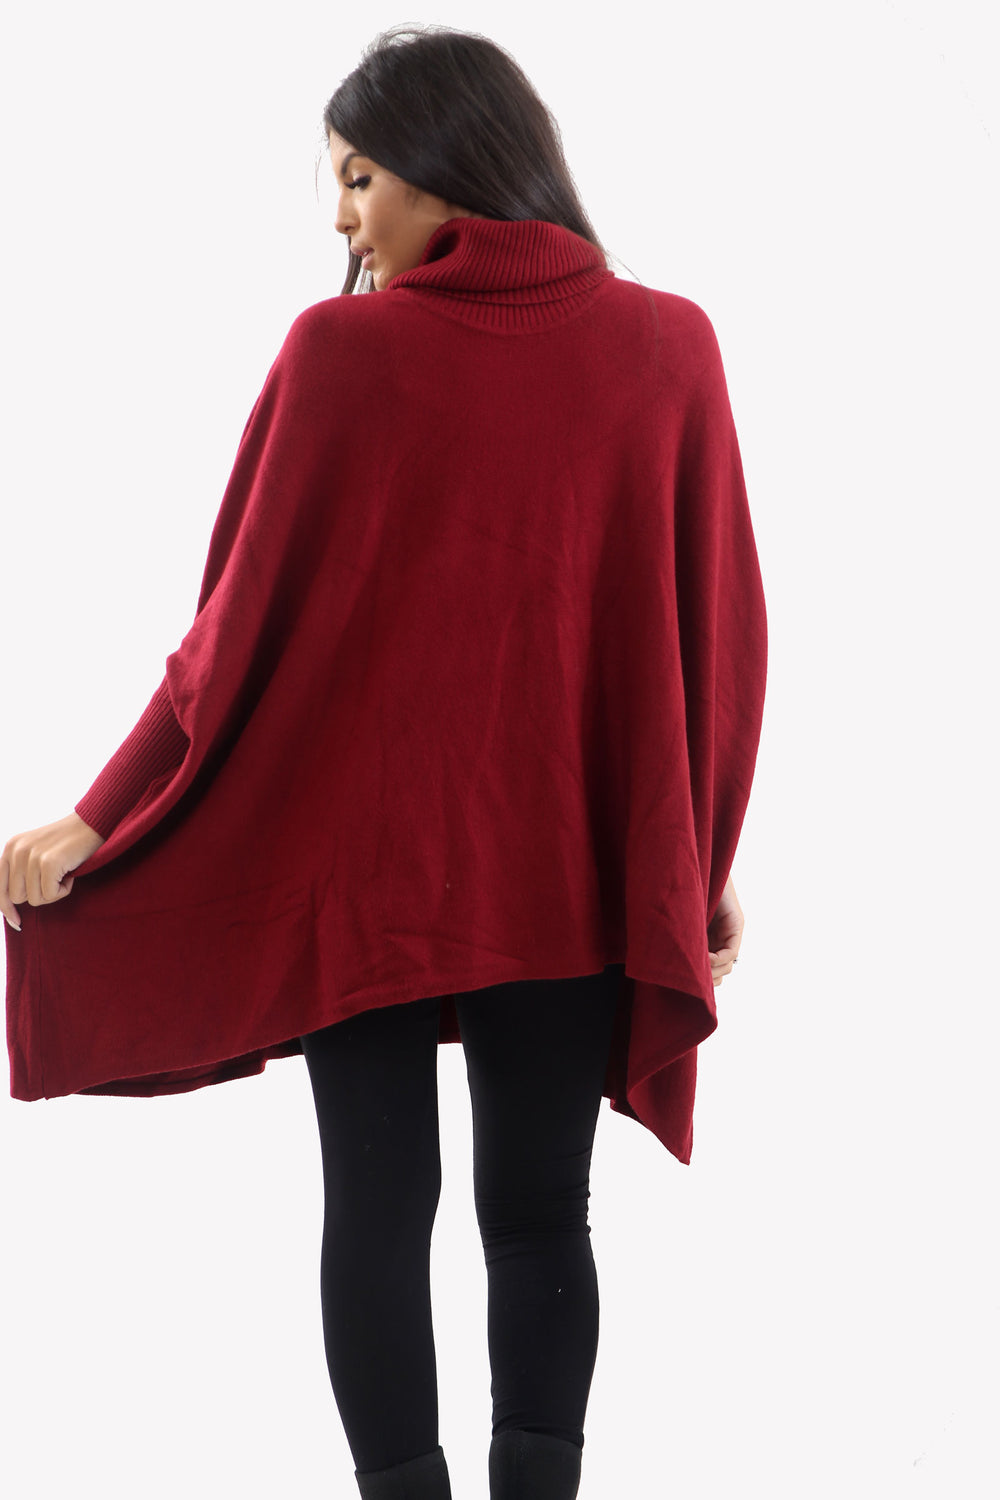 Wine Roll Neck Batwing Oversized Soft Jumper